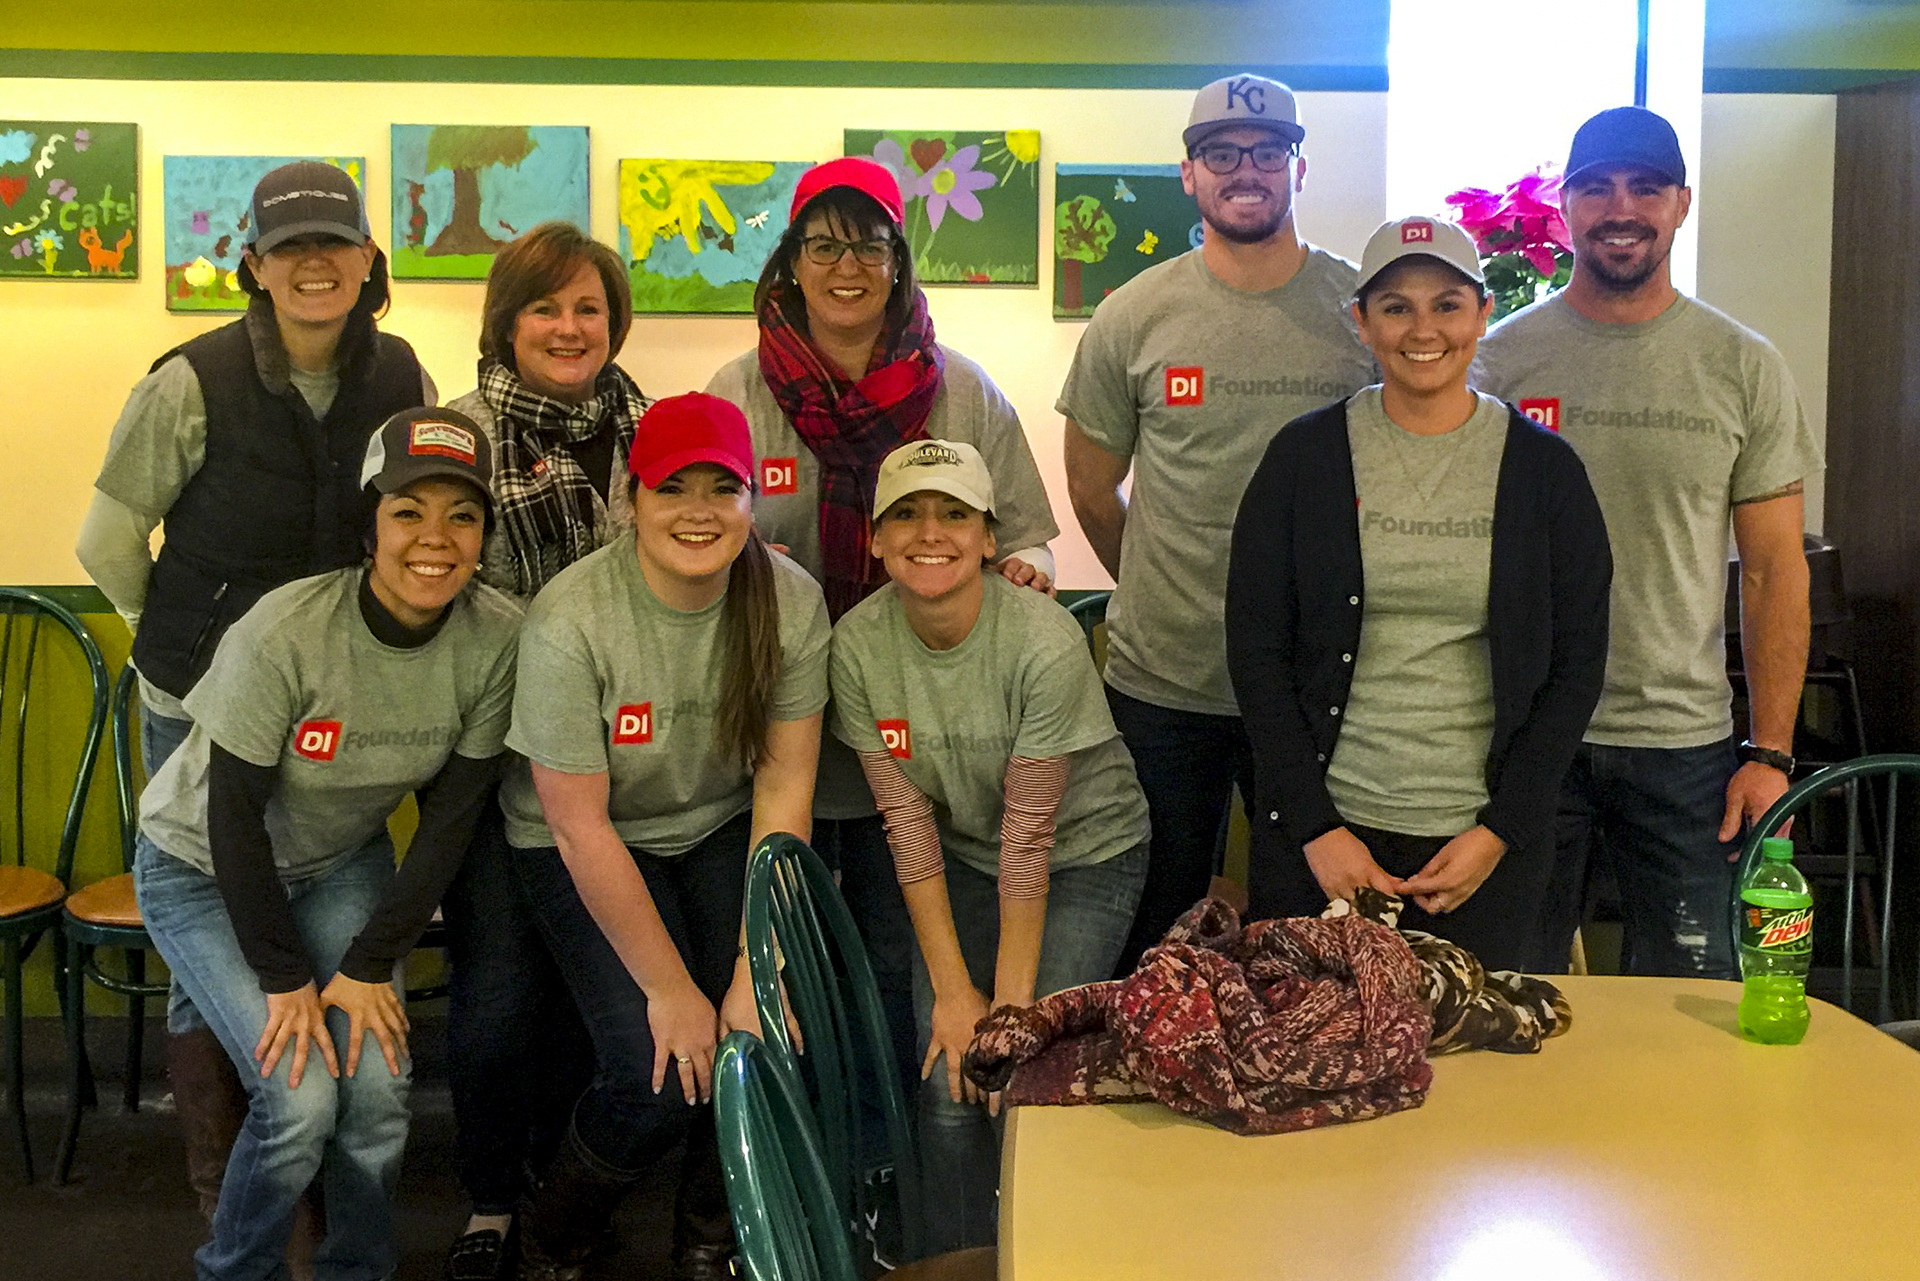 Di Volunteers At Kc Community Kitchen Di Foundation